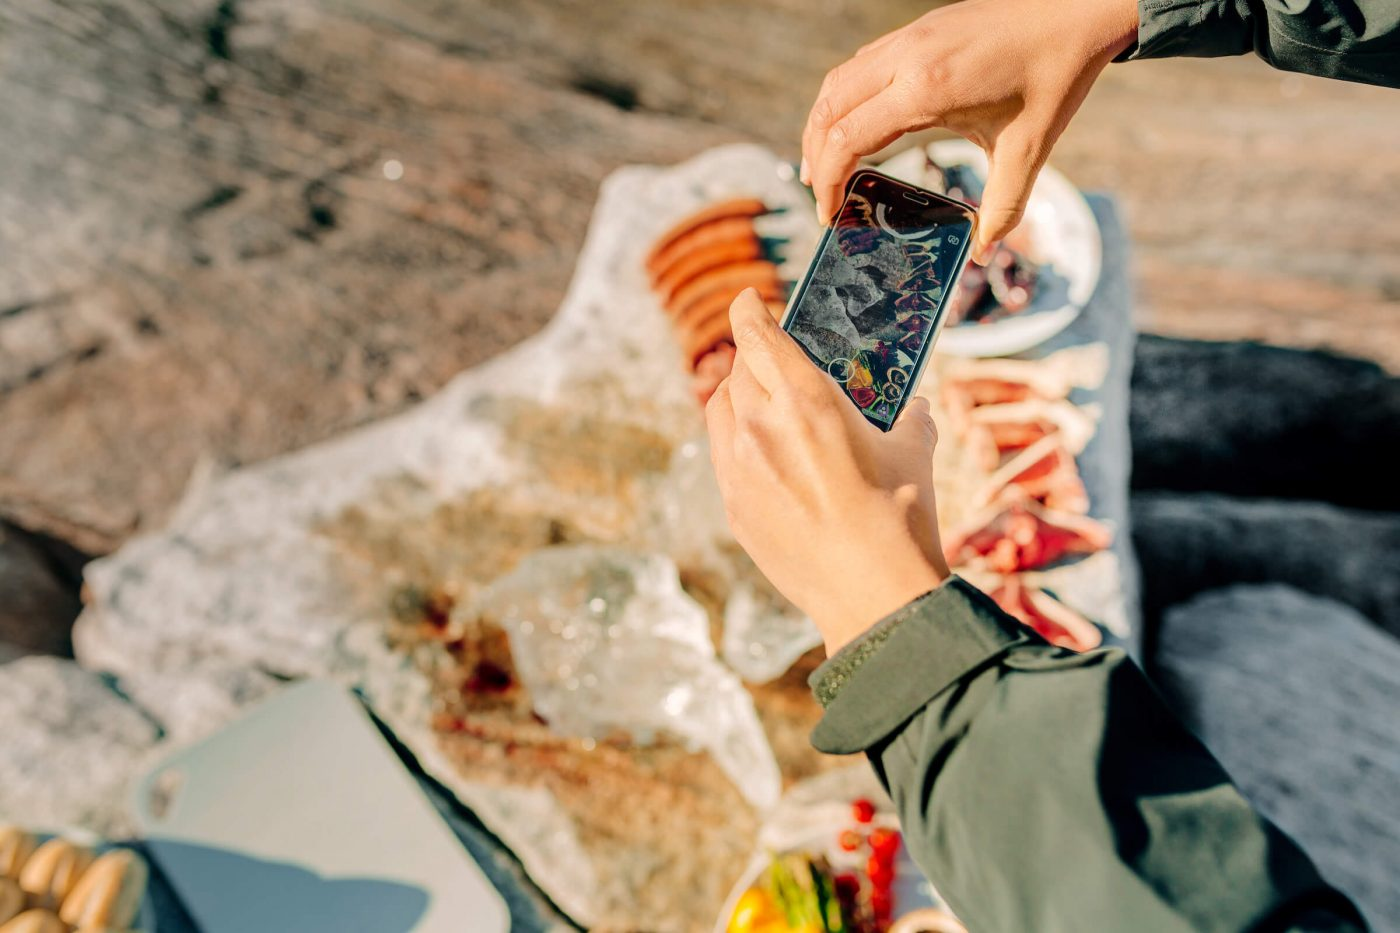 Woman taking a picture of greenlandic food on the rocks in Nuuk in Greenland, by Mads Pihl